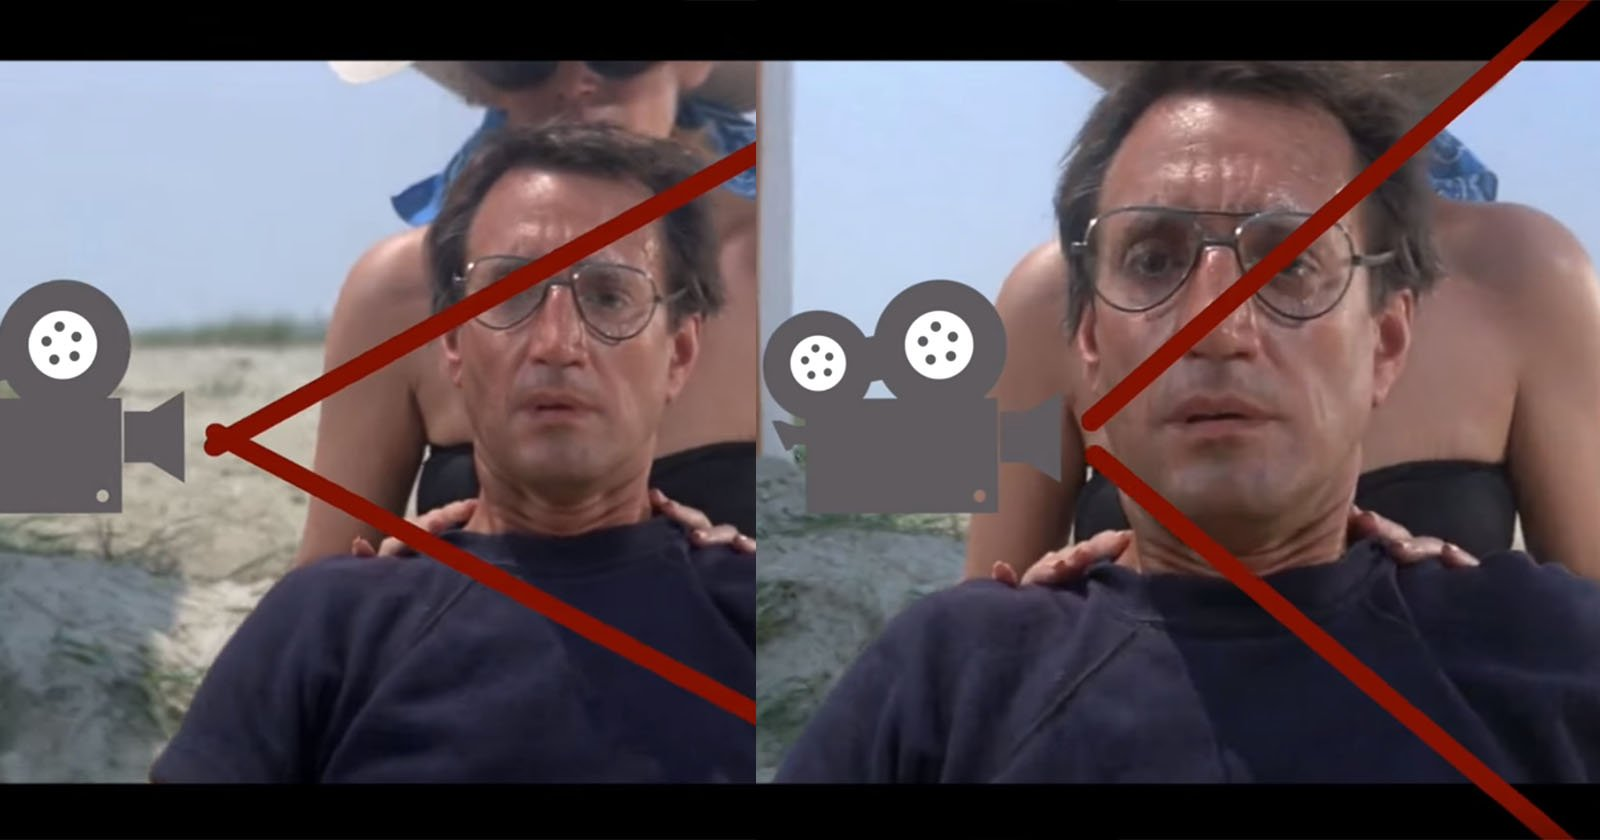 A Closer Look at the Dolly Zoom